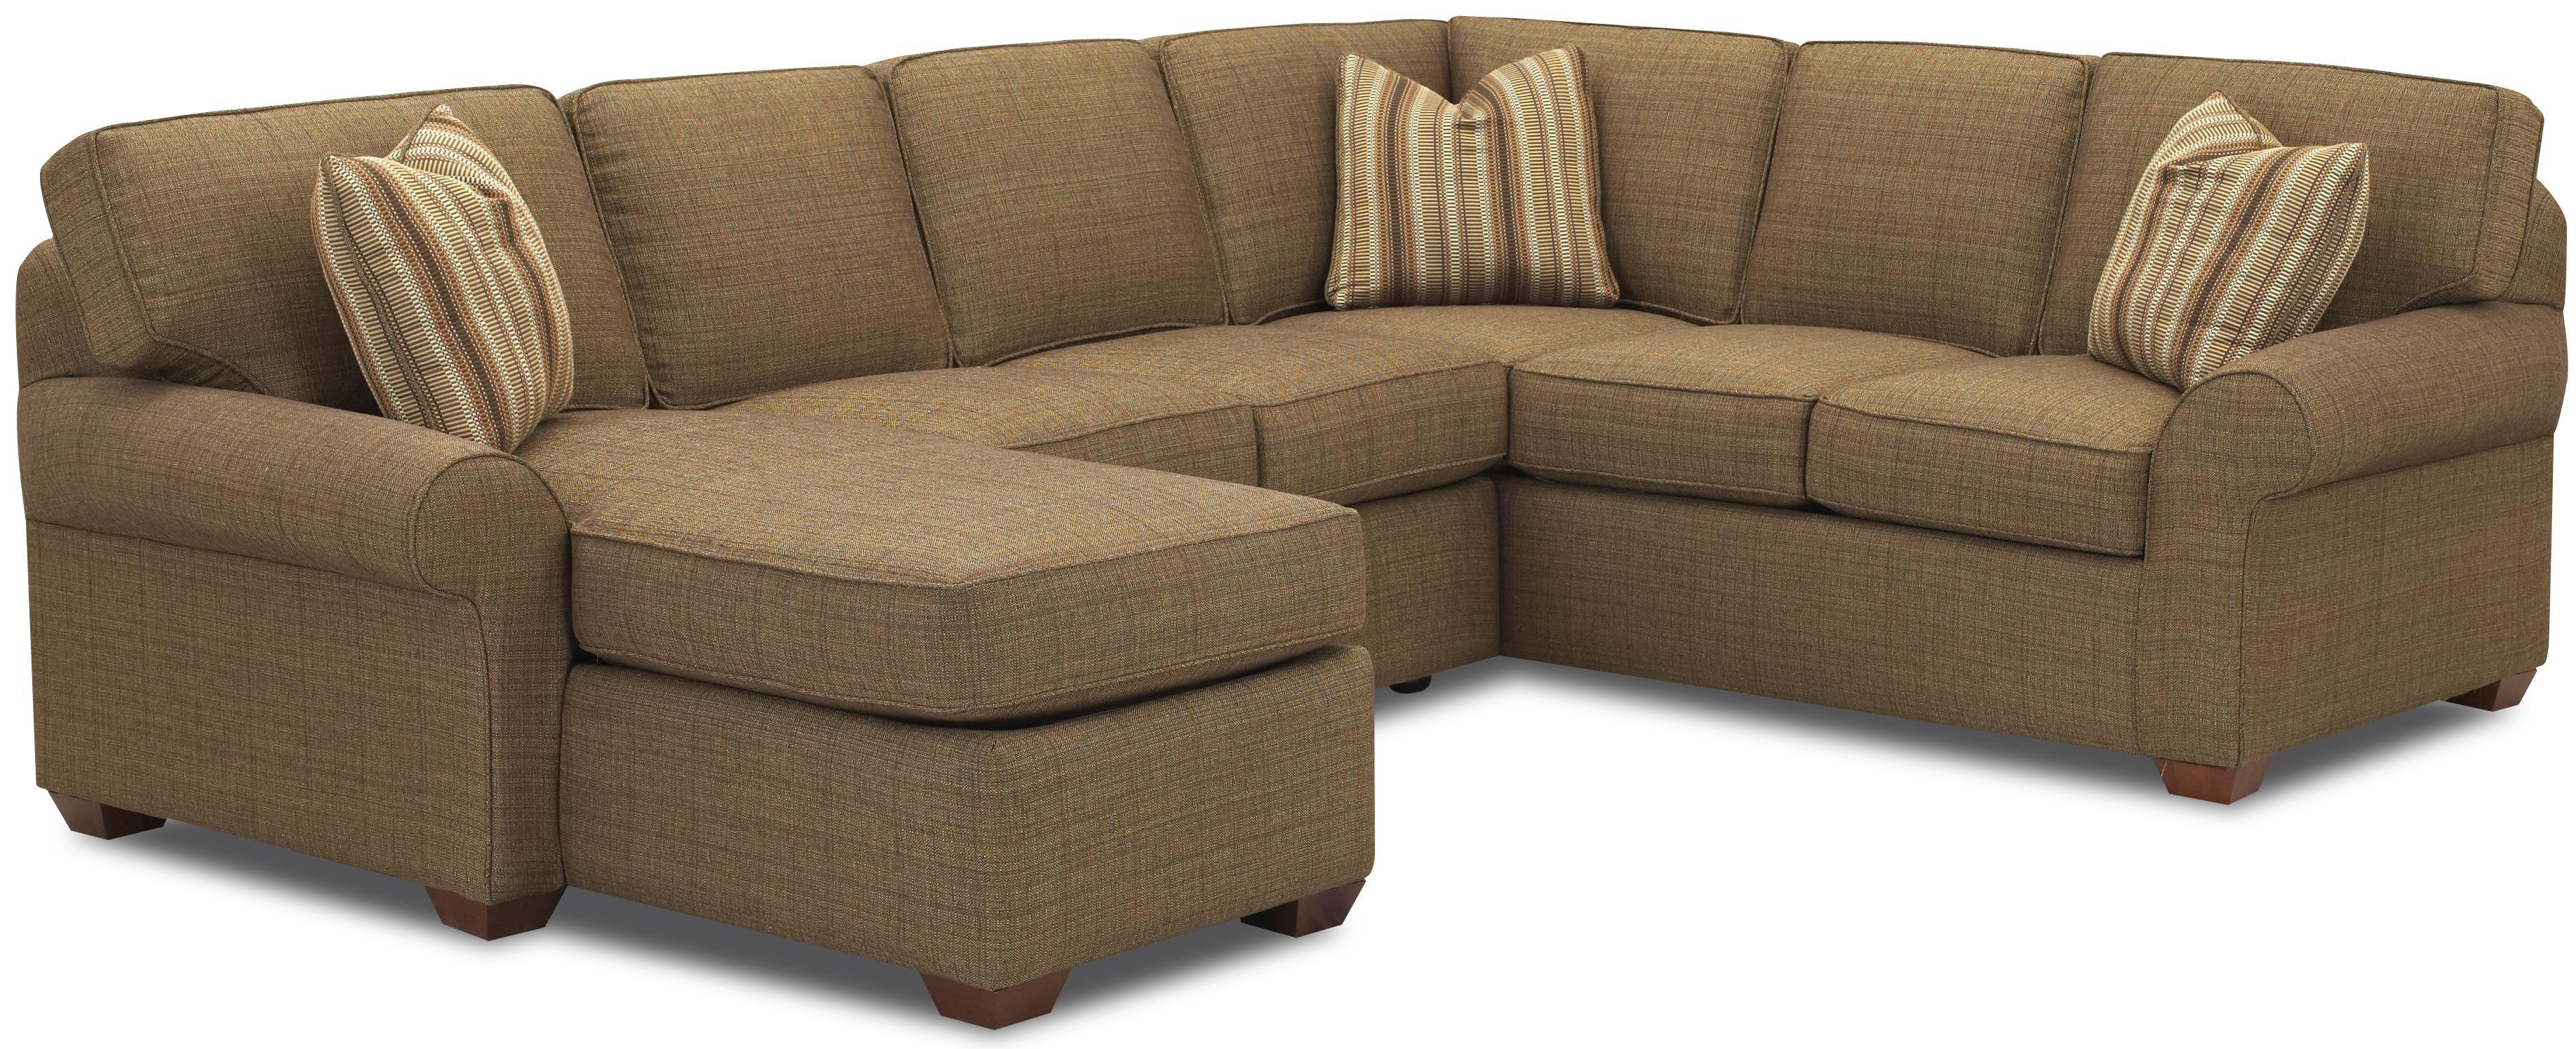 Sectional Sofa Group with Left Chaise Lounge  sc 1 st  Wolf Furniture : sectional sofa left chaise - Sectionals, Sofas & Couches